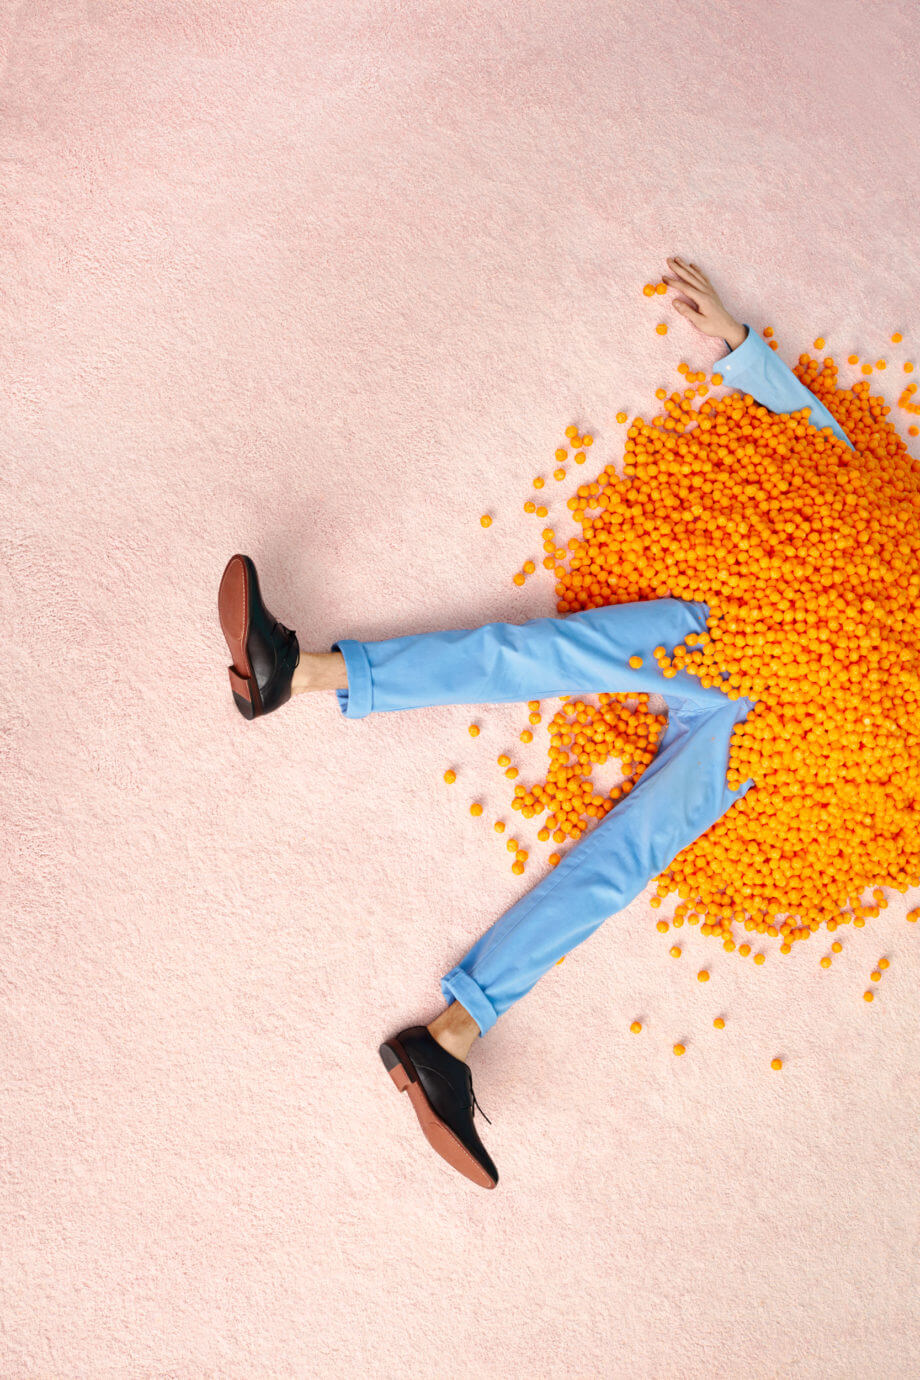 Mintsquare_selected_Jimmy Marble